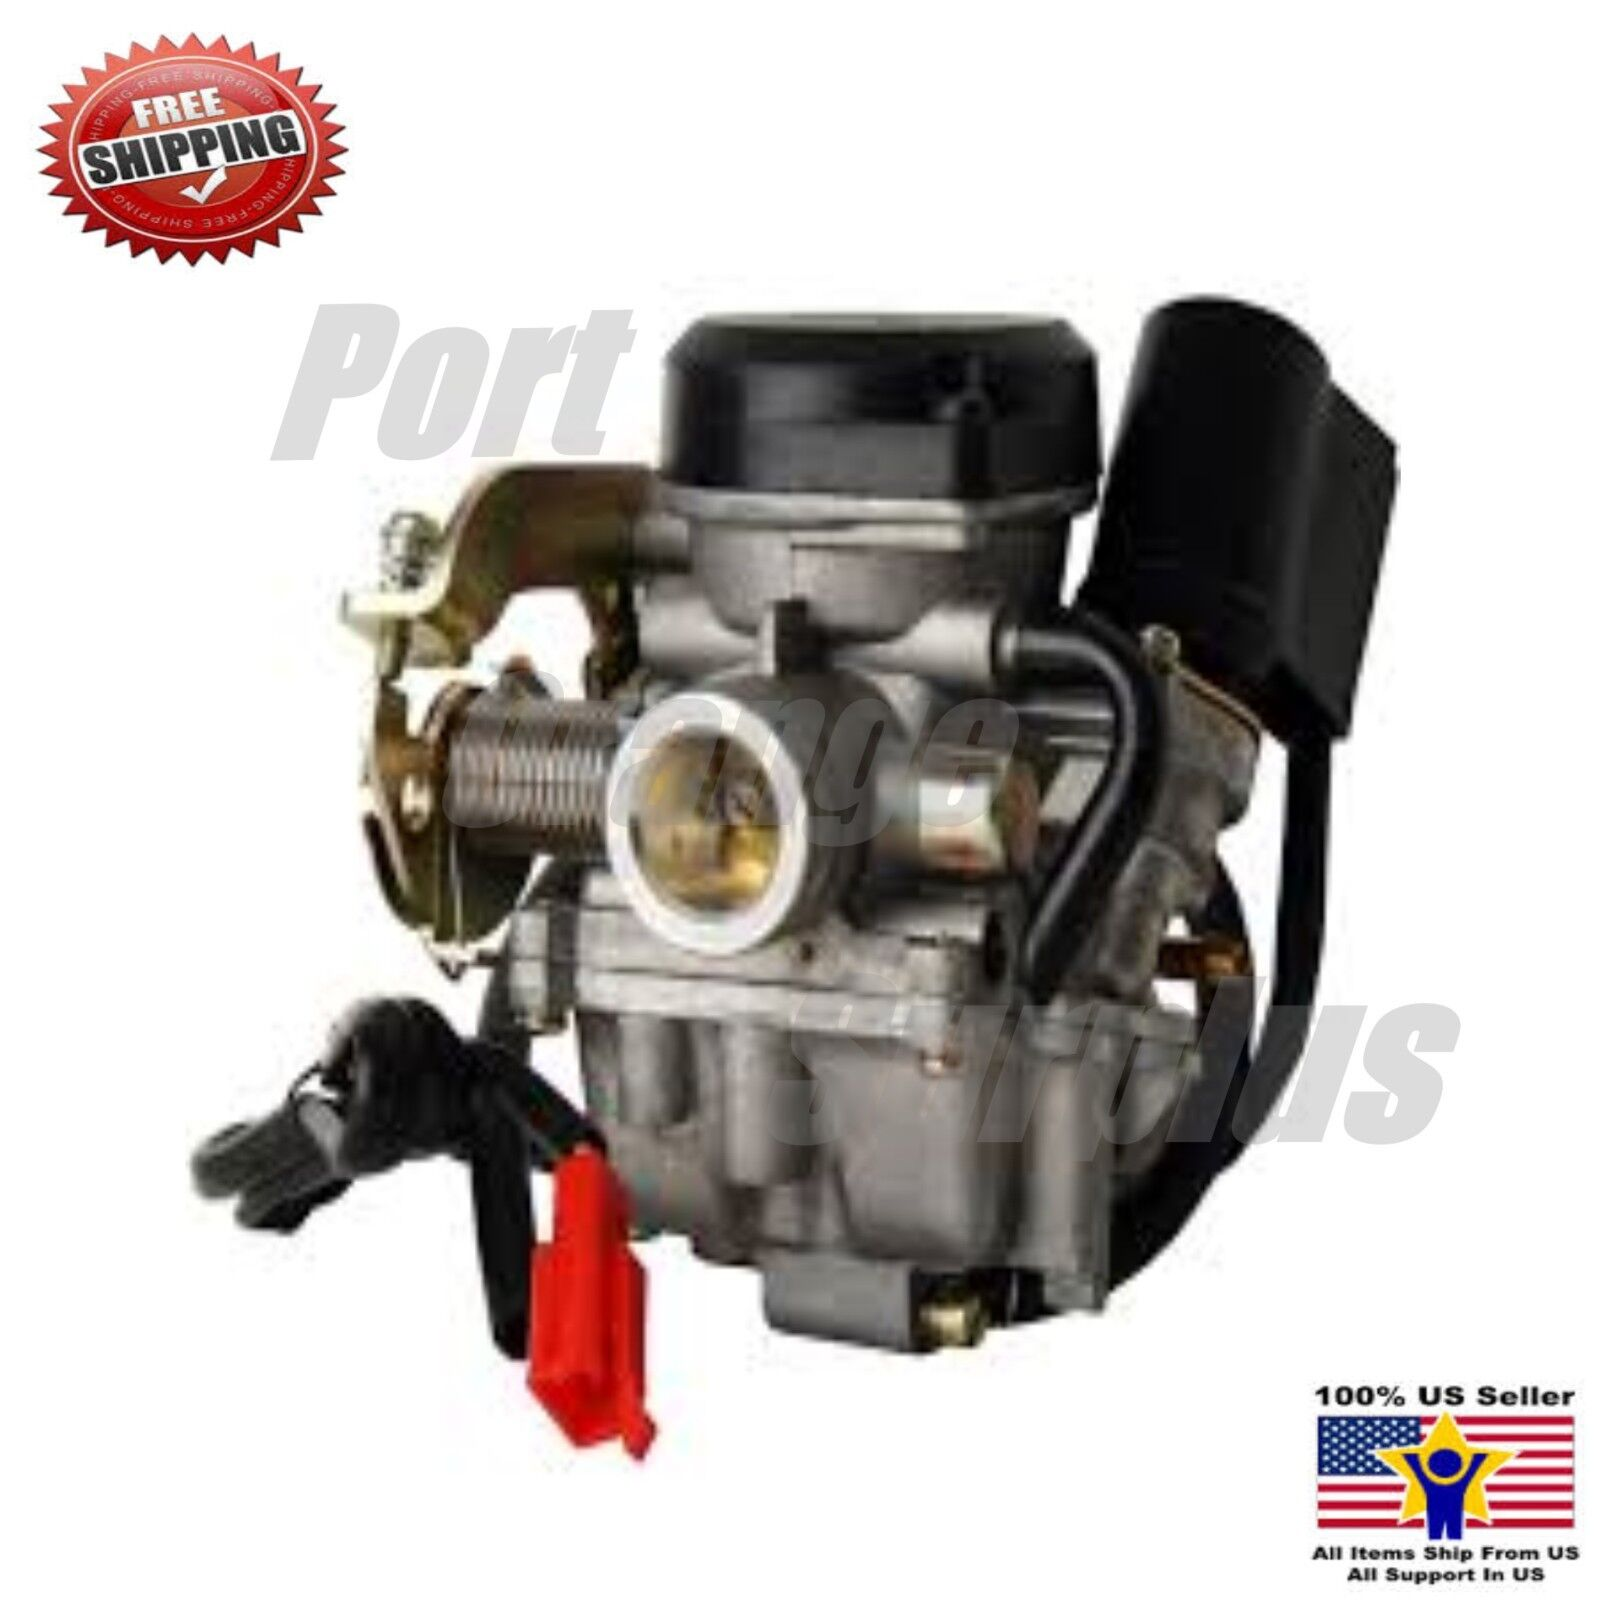 Details about Chinese Scooter Carburetor Tao Tao 50cc ATM50-A1 Black Top  Best Quality